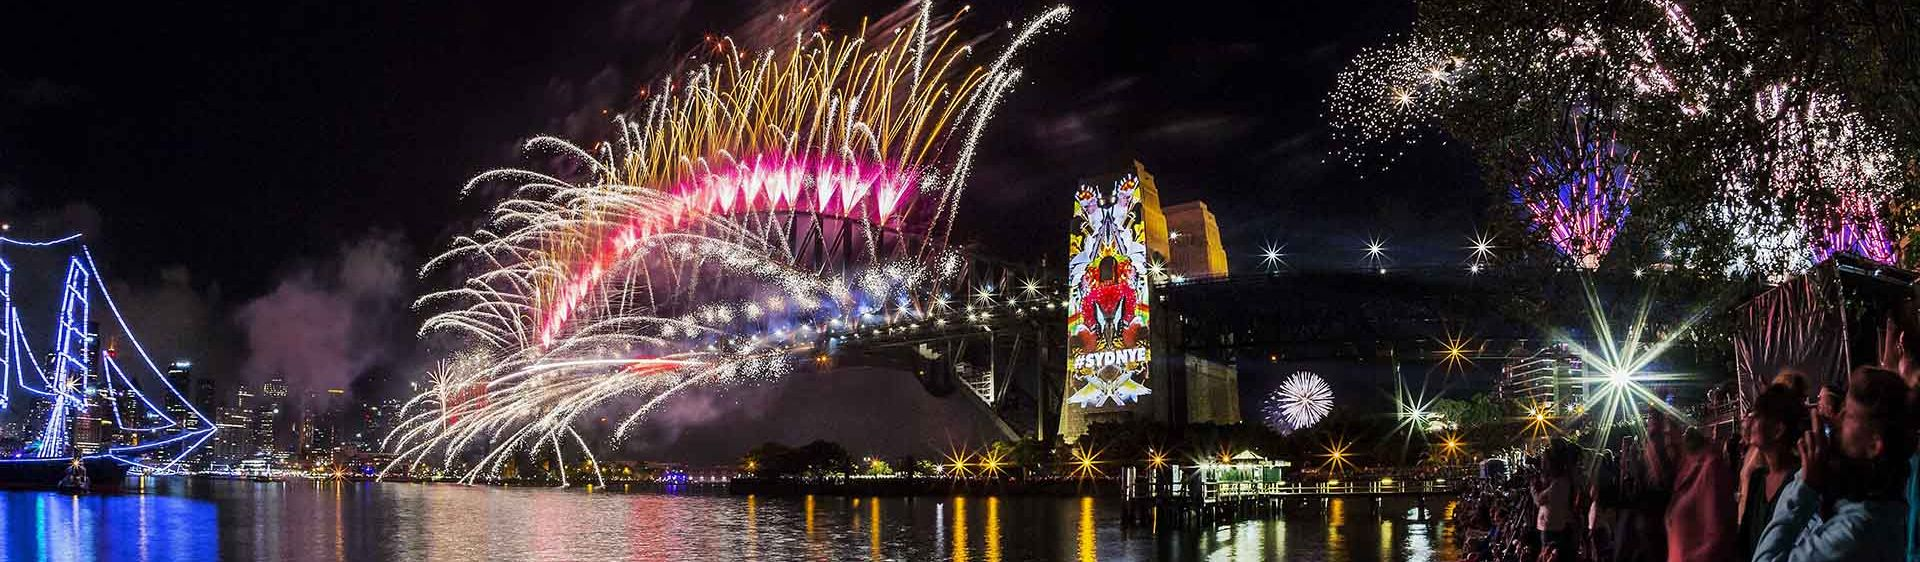 Classy Sydney Harbour Bridge On New Eve Sydney New Eve Things To Cruises Events New Years S Clip Art New Year S To Post On Facebook photos New Years Pictures